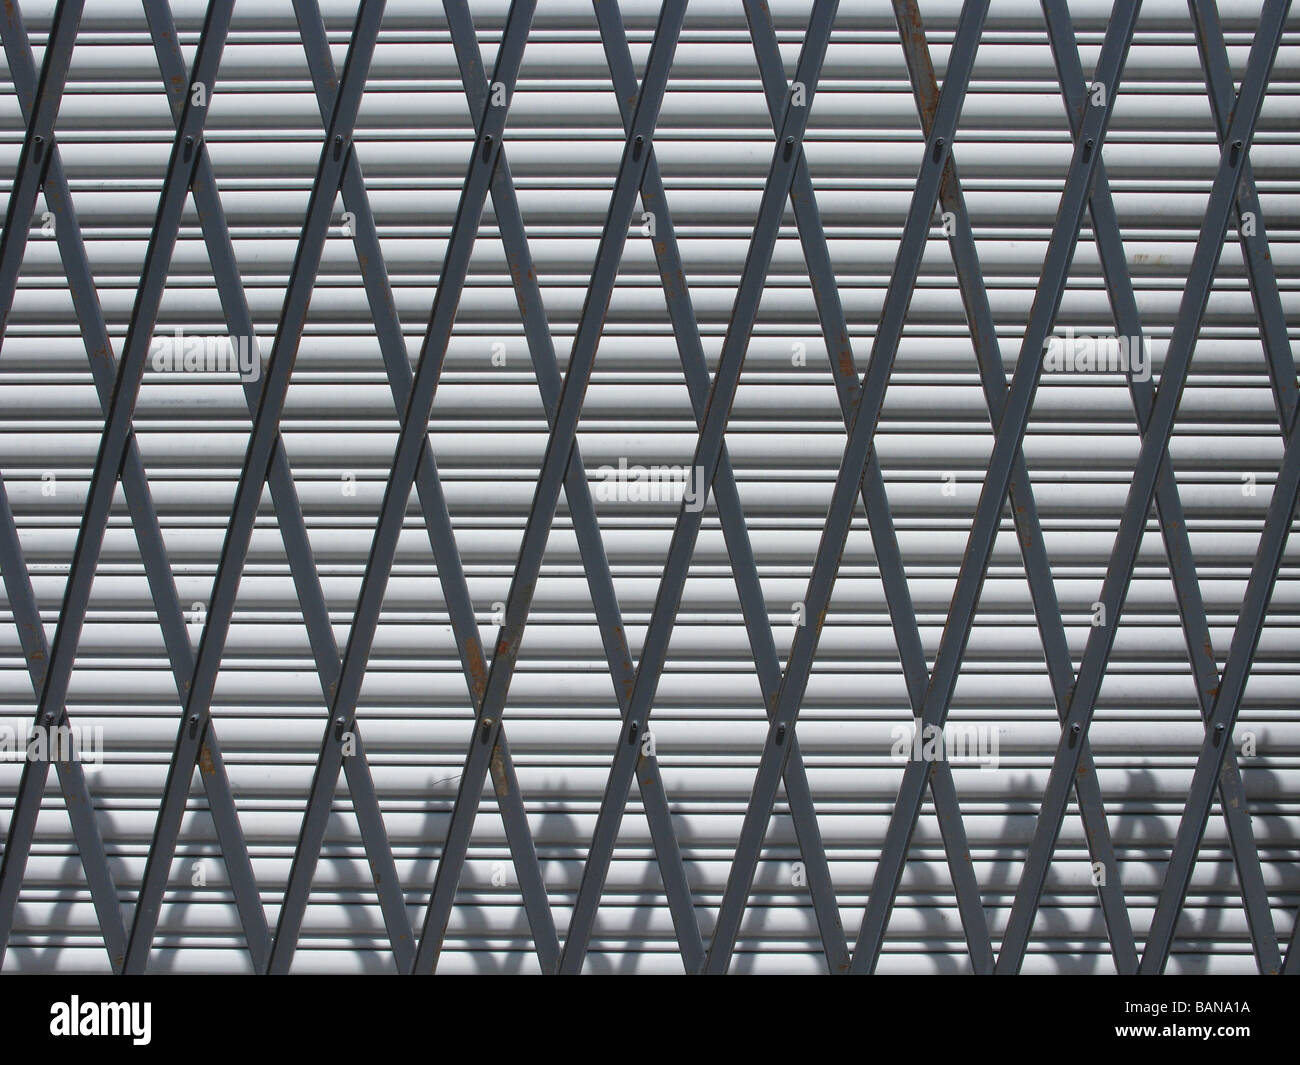 Two metal security gates - Stock Image